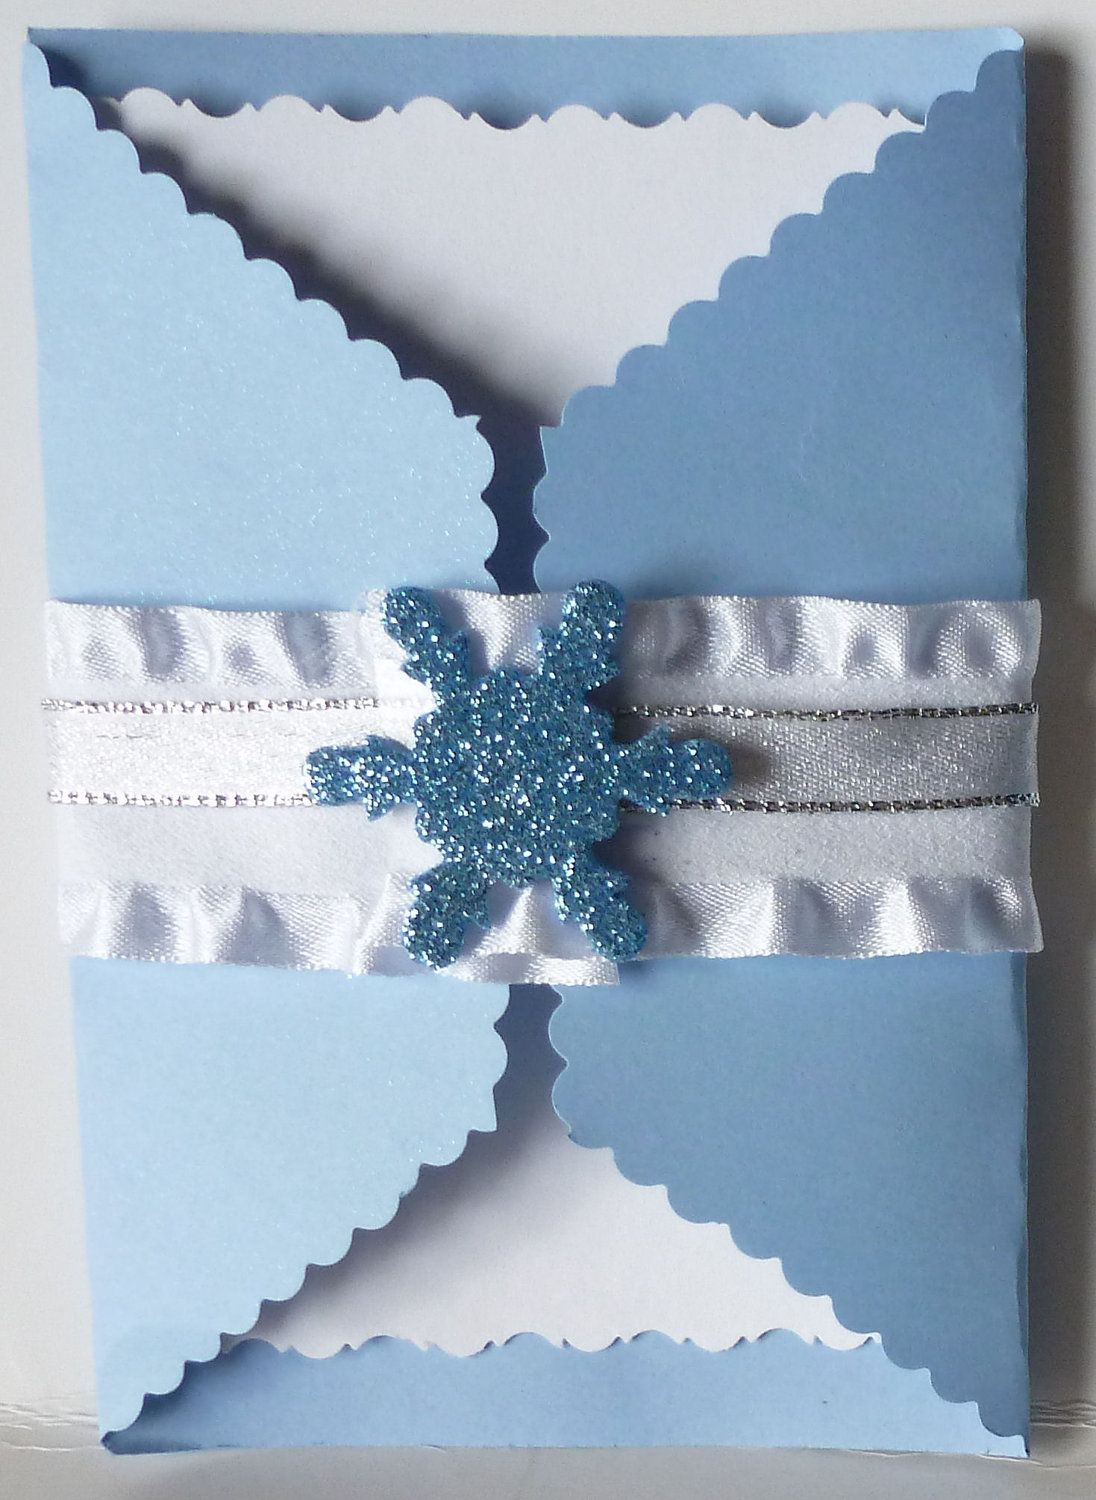 winter wonderland quinceanera theme  google search  quinces, party invitations